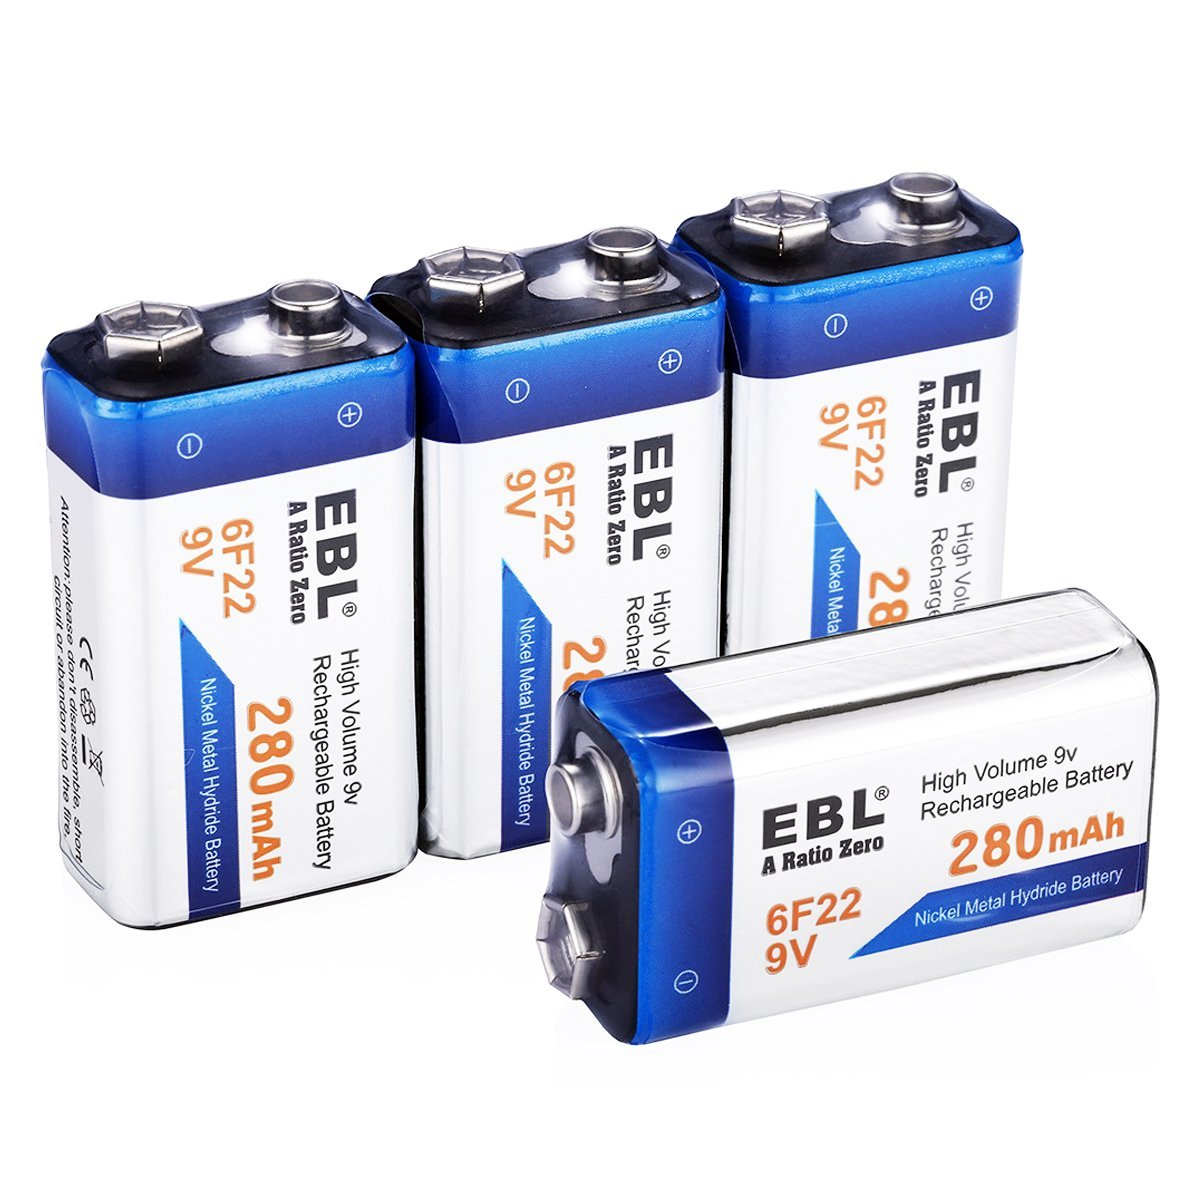 ebl 15 pack 280mah rechargeable 9v batteries without memory effect eblmall official site. Black Bedroom Furniture Sets. Home Design Ideas